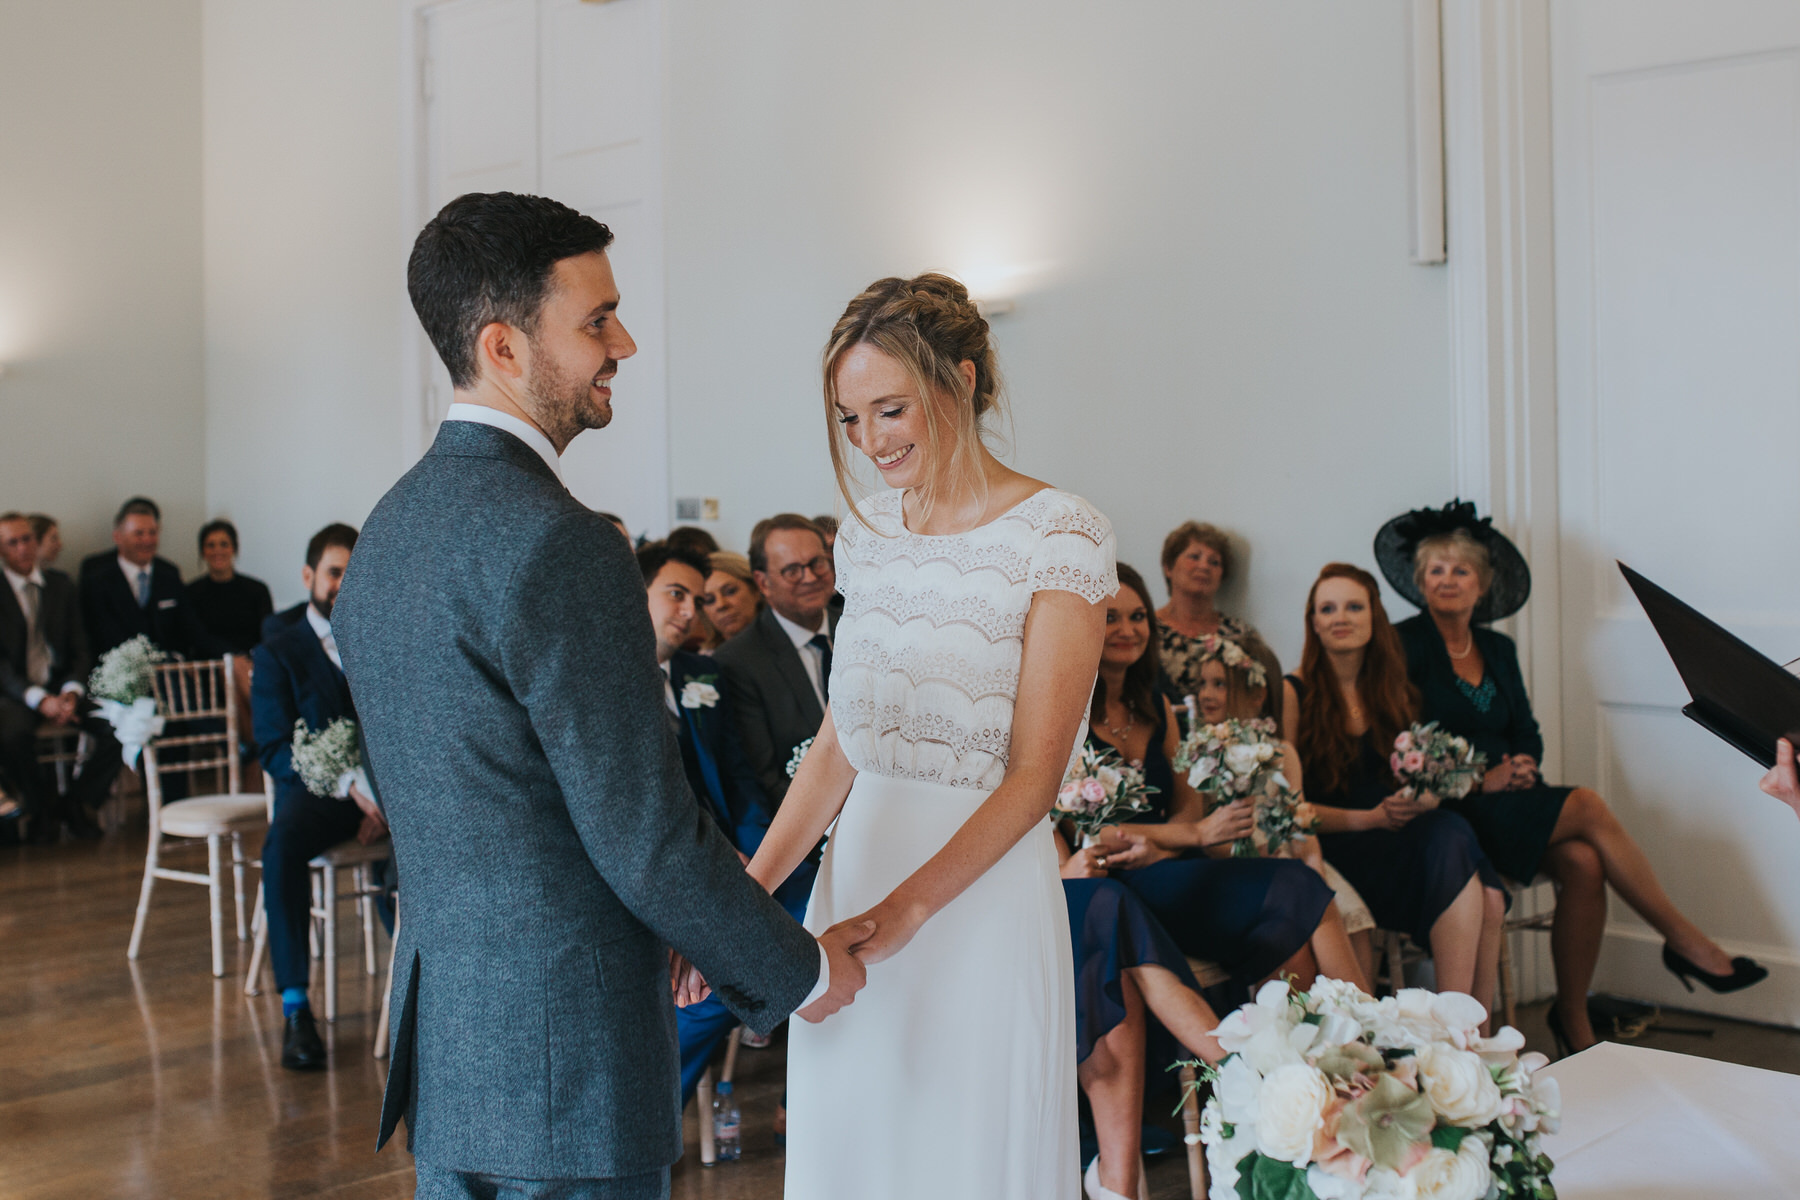 blushing bride holds hands with groom during ceremony.jpg